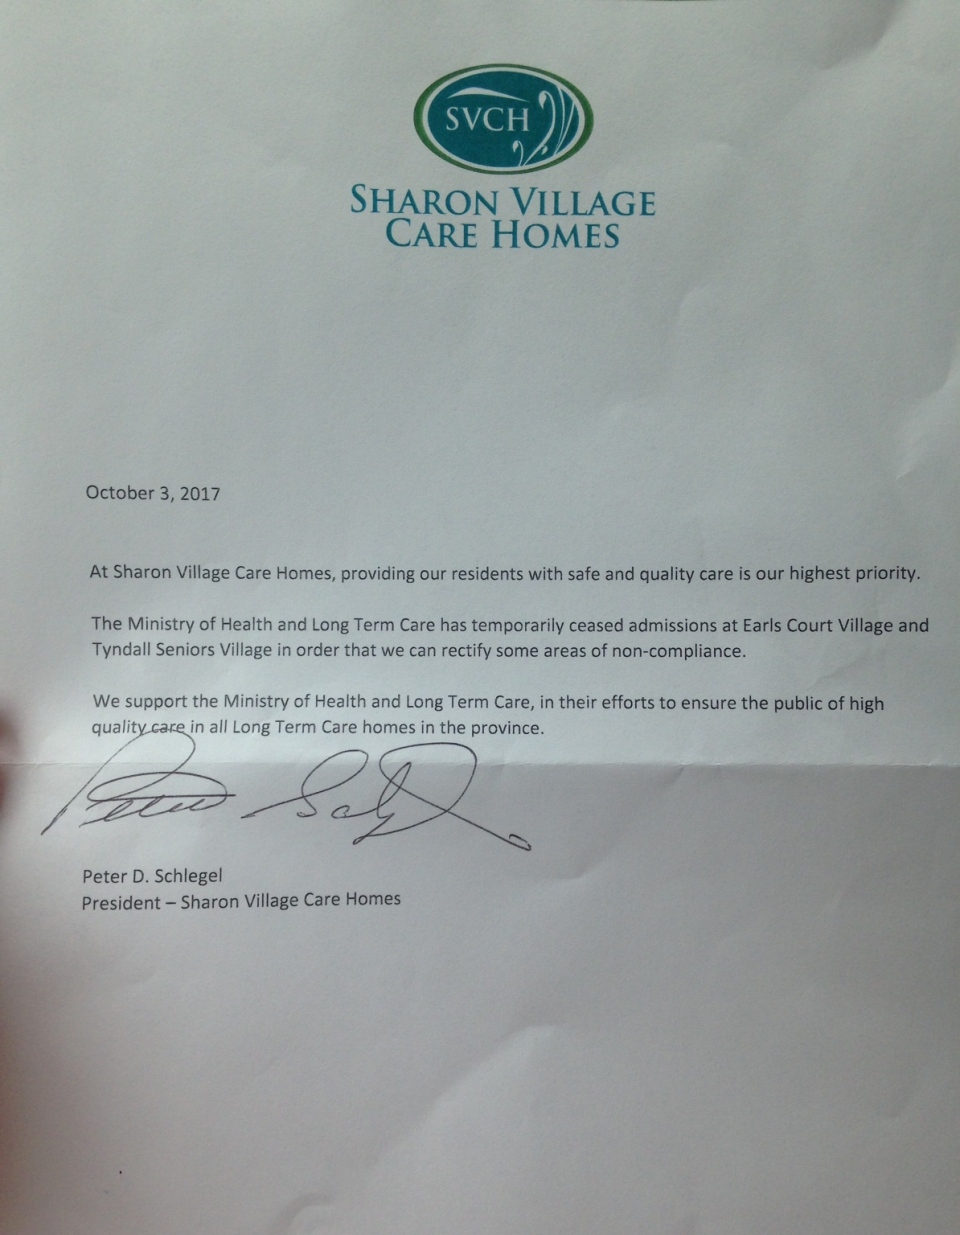 Letter from Sharon Village Care Homes on Oct. 3, 2017